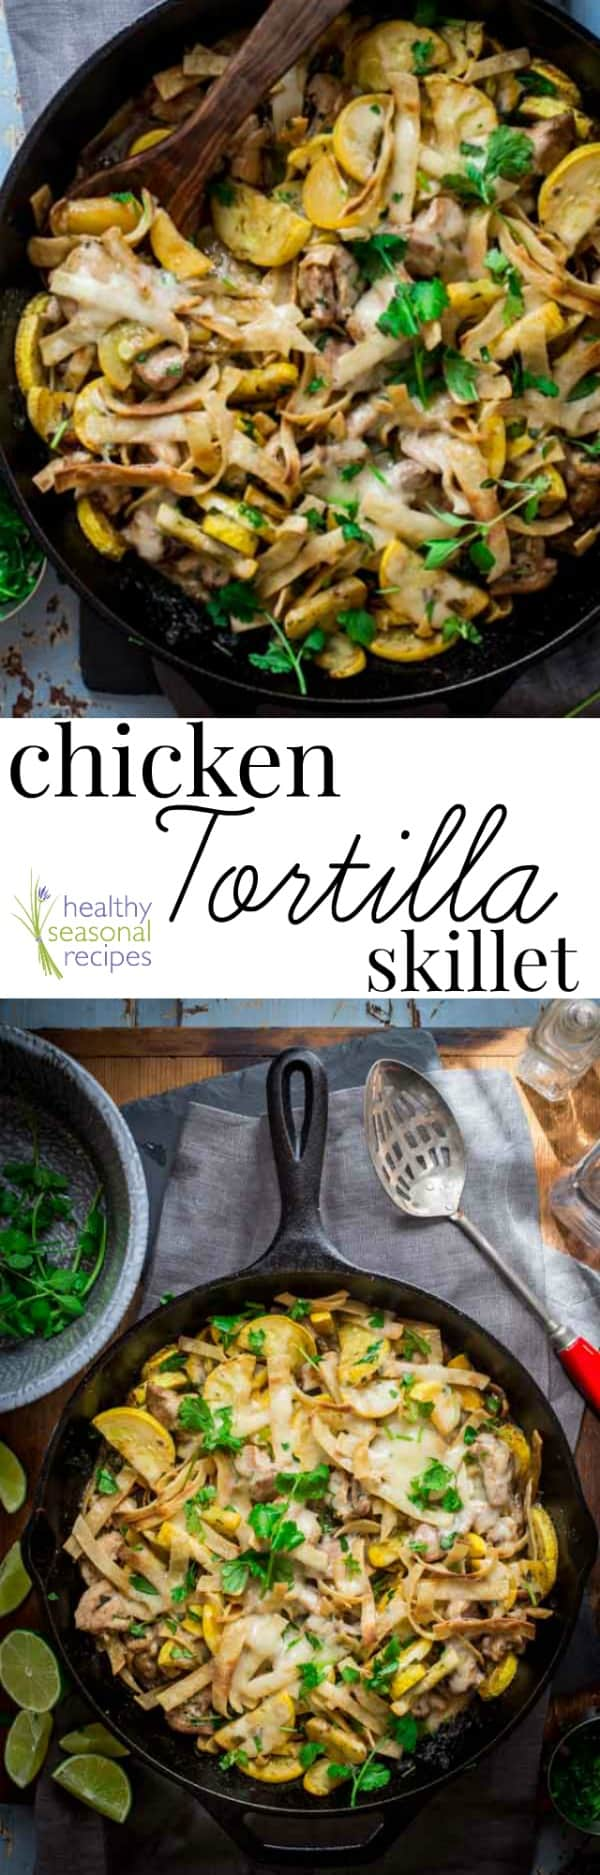 Chicken tortilla skillet photo collage with text